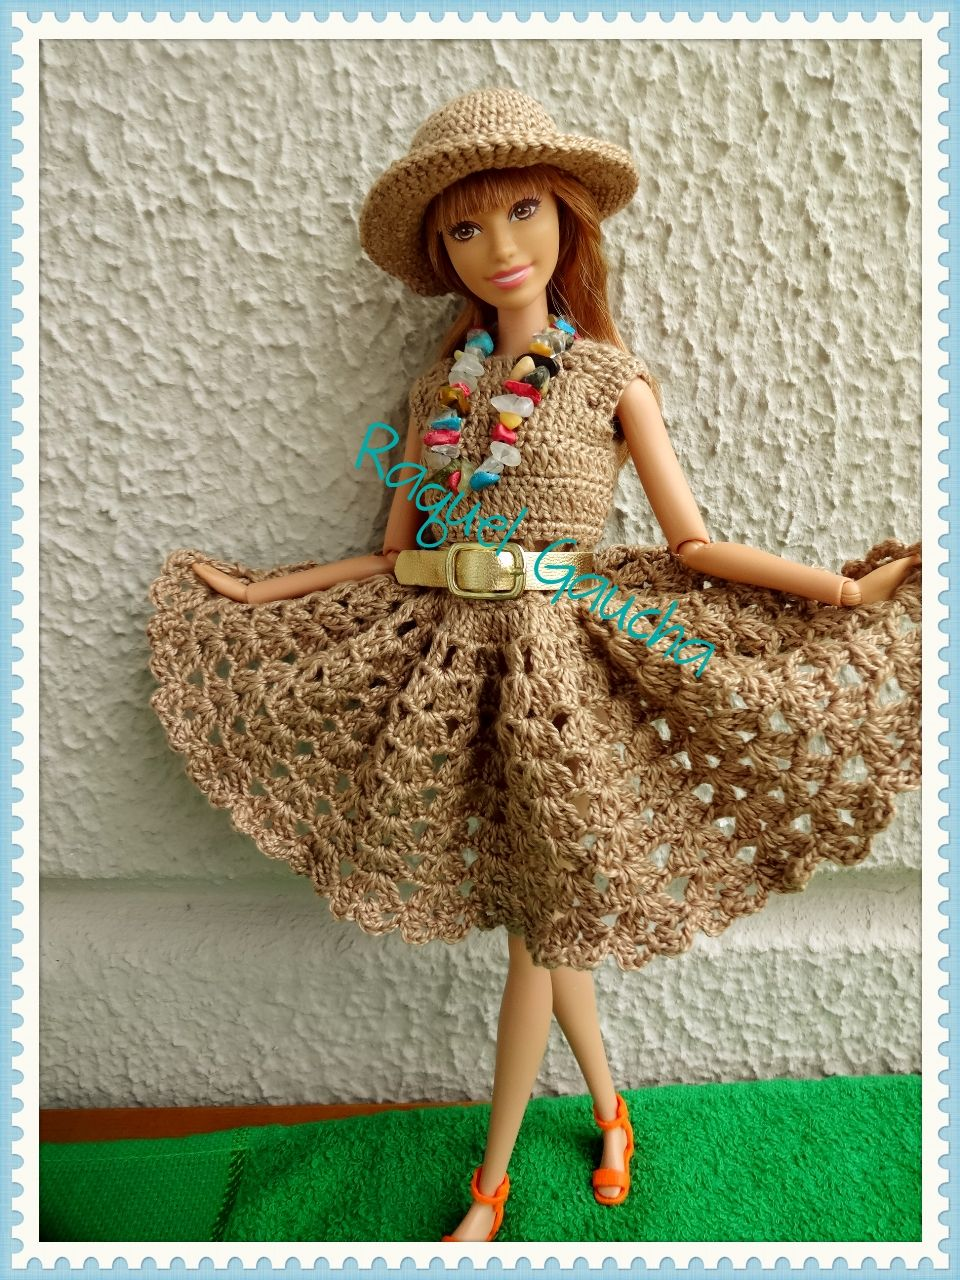 Cléa5 #Barbie #Crochet #Doll Muñeca #Vestido #Dress #Chapéu #Hat ...